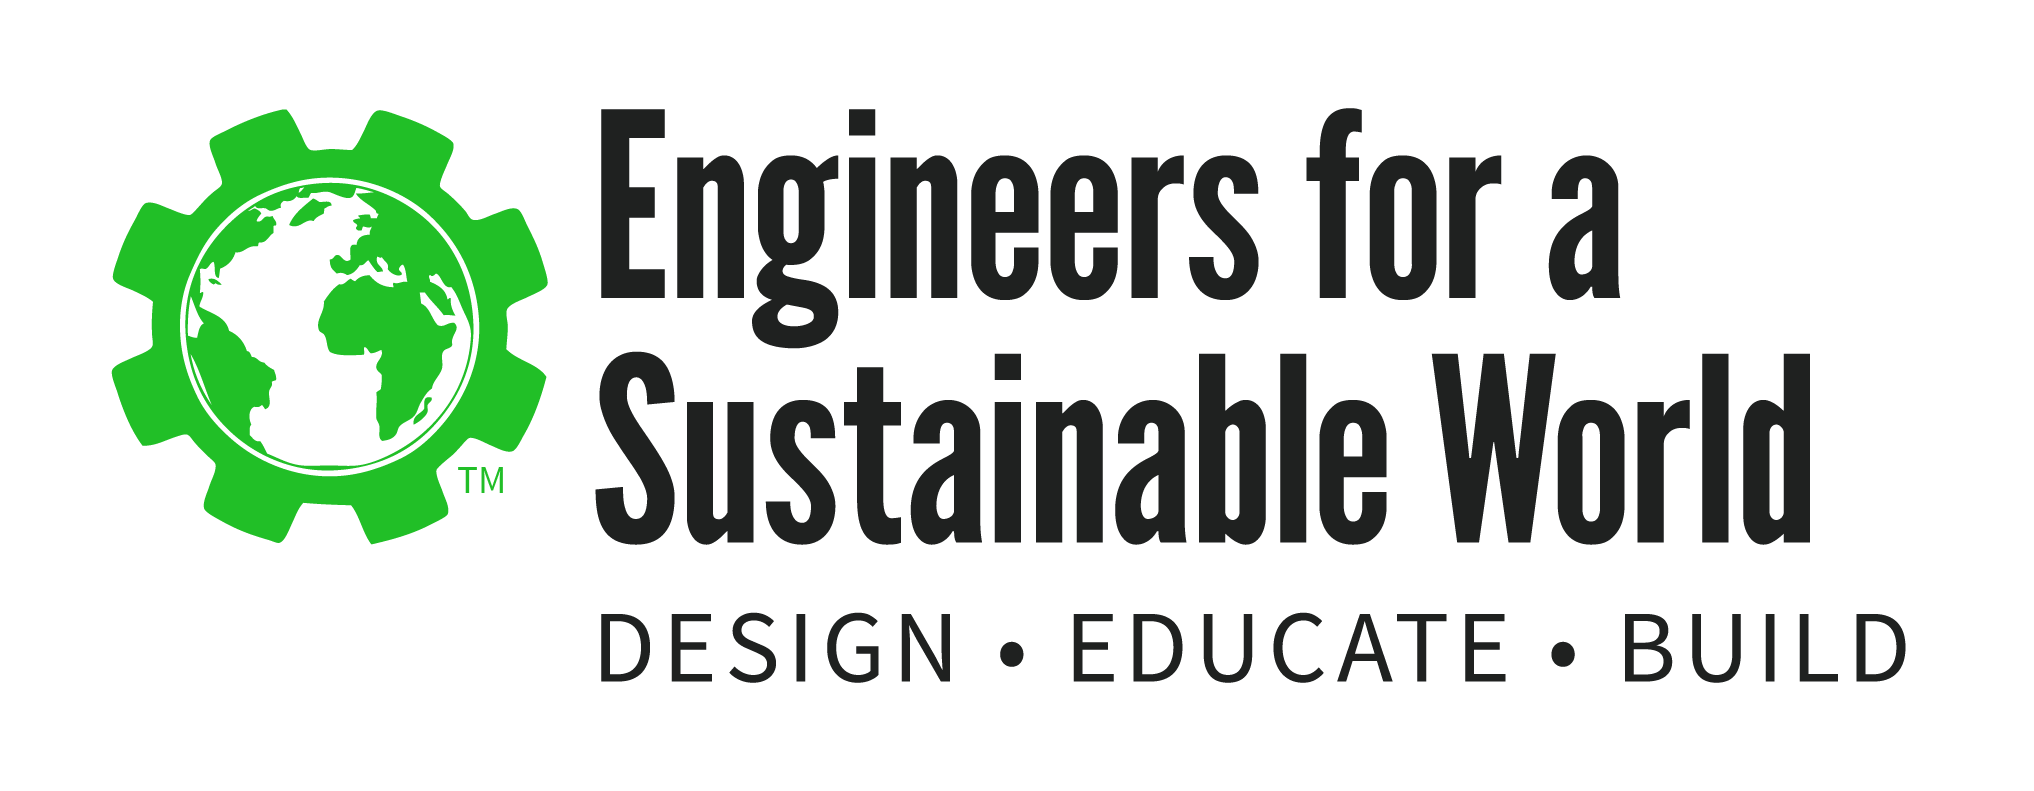 Engineers for a Sustainable World logo full-2line_large